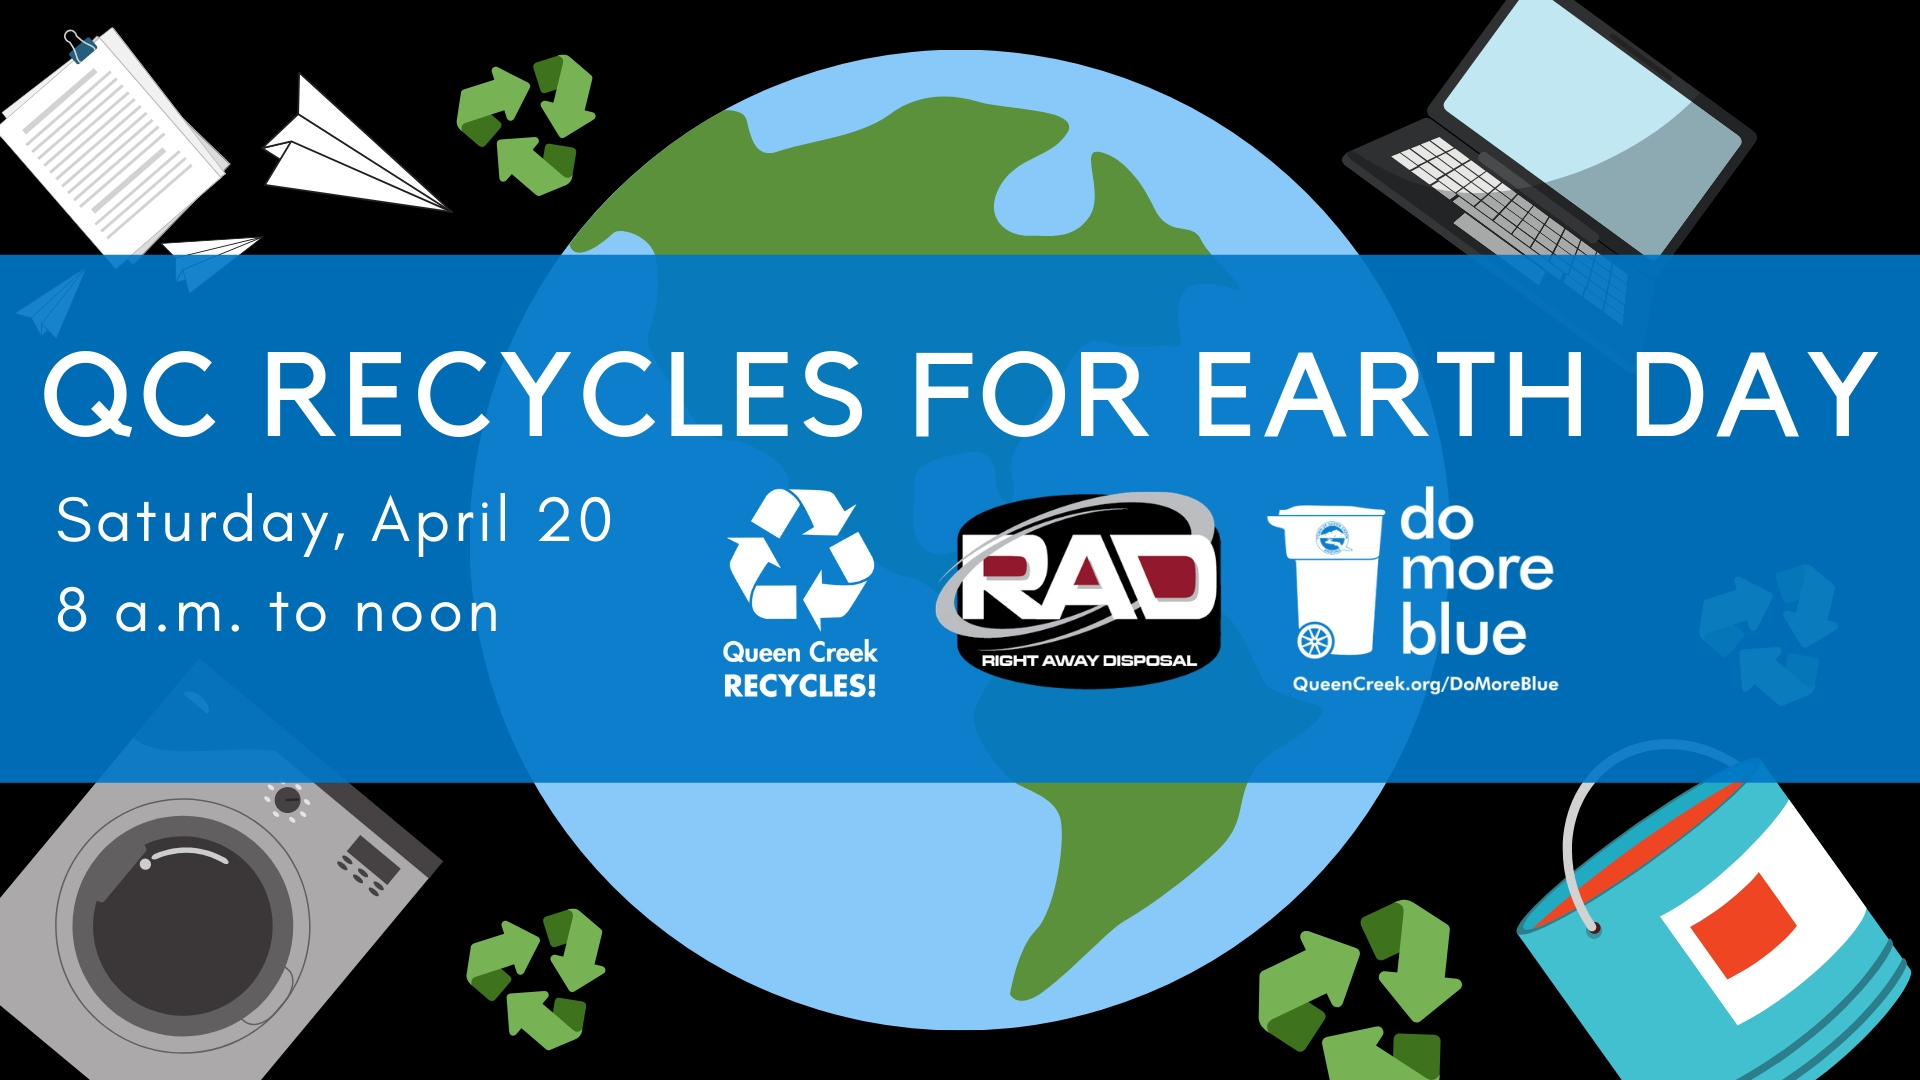 Qc recycles for earth day FB Event Cover